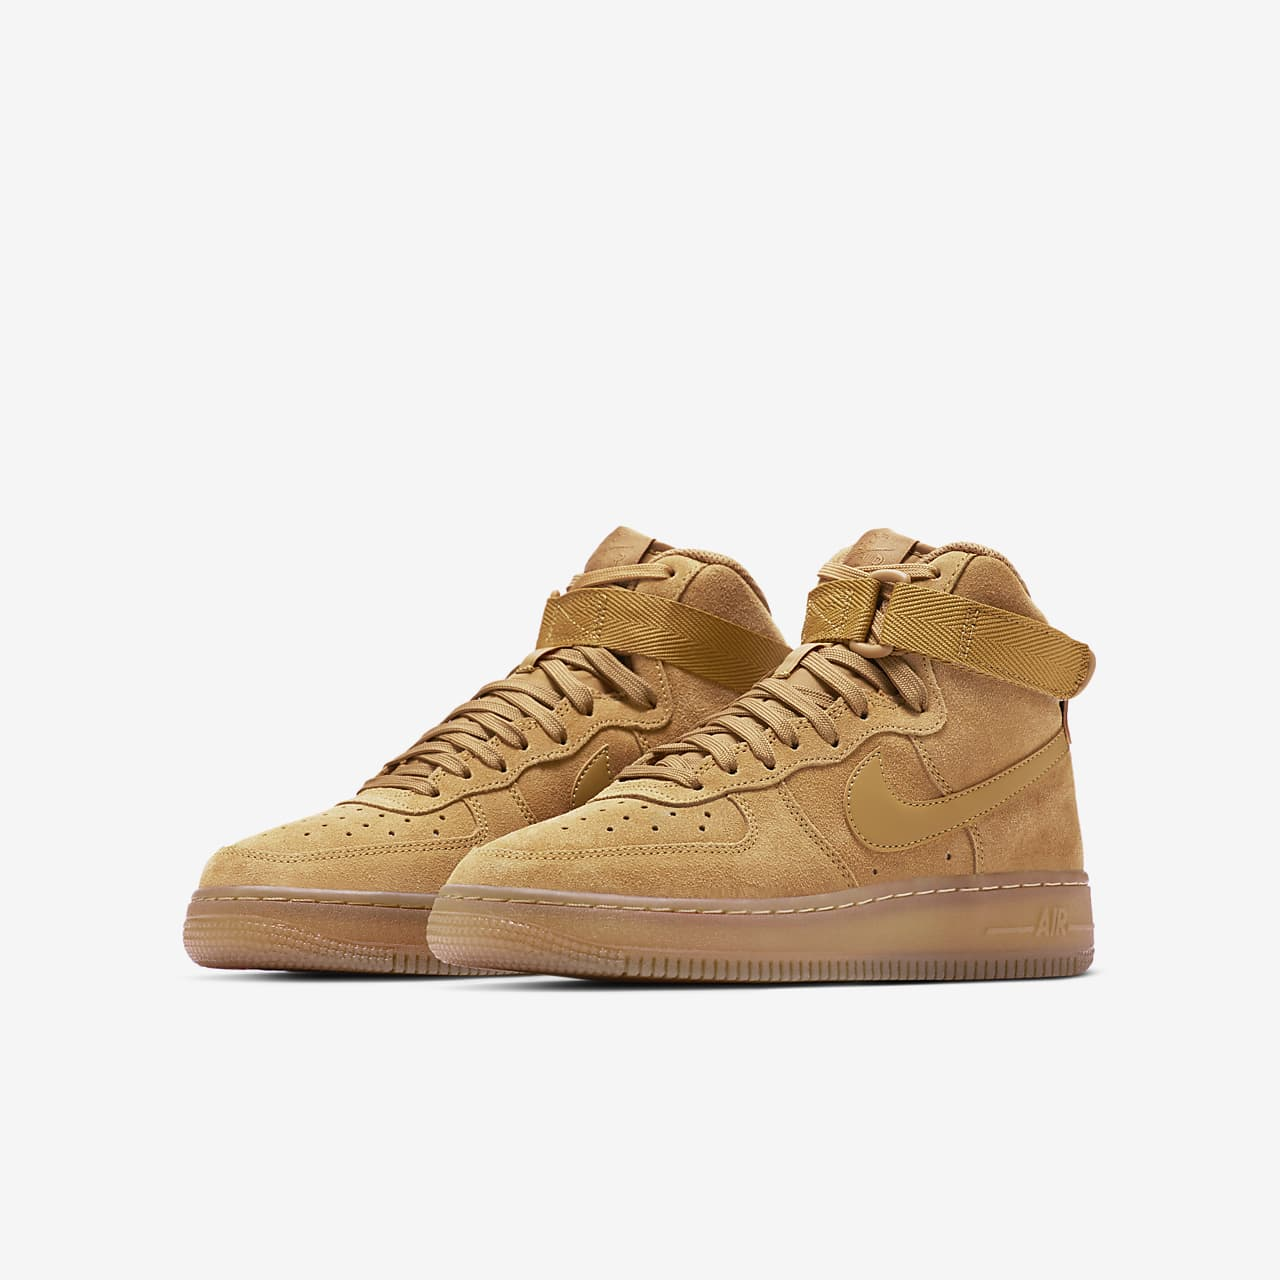 Nike Air Force 1 High LV8 3 Big Kids' Shoe